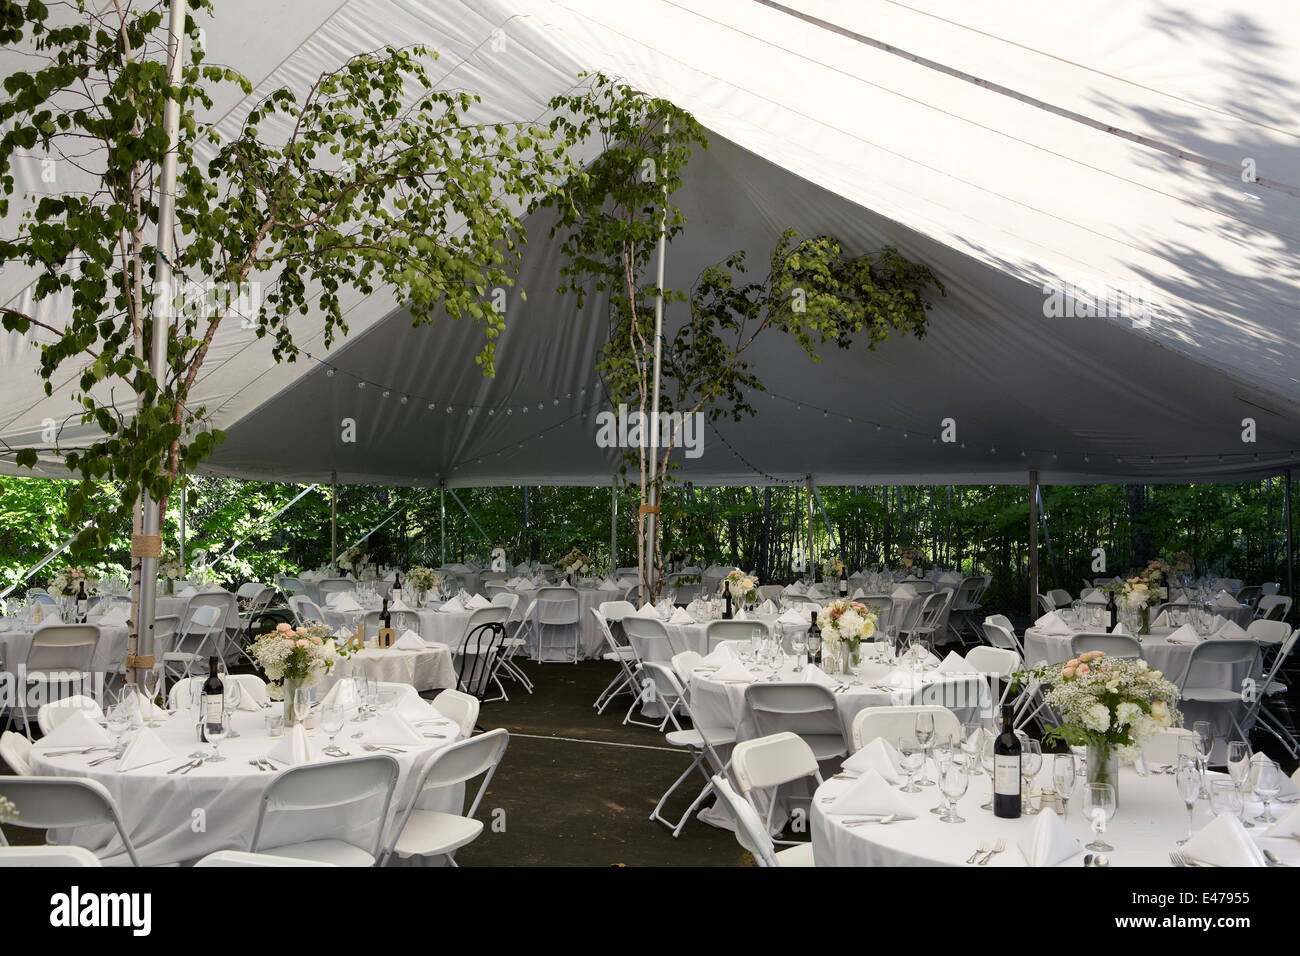 Outdoor Tent Set Up For Wedding Banquet Stock Photo